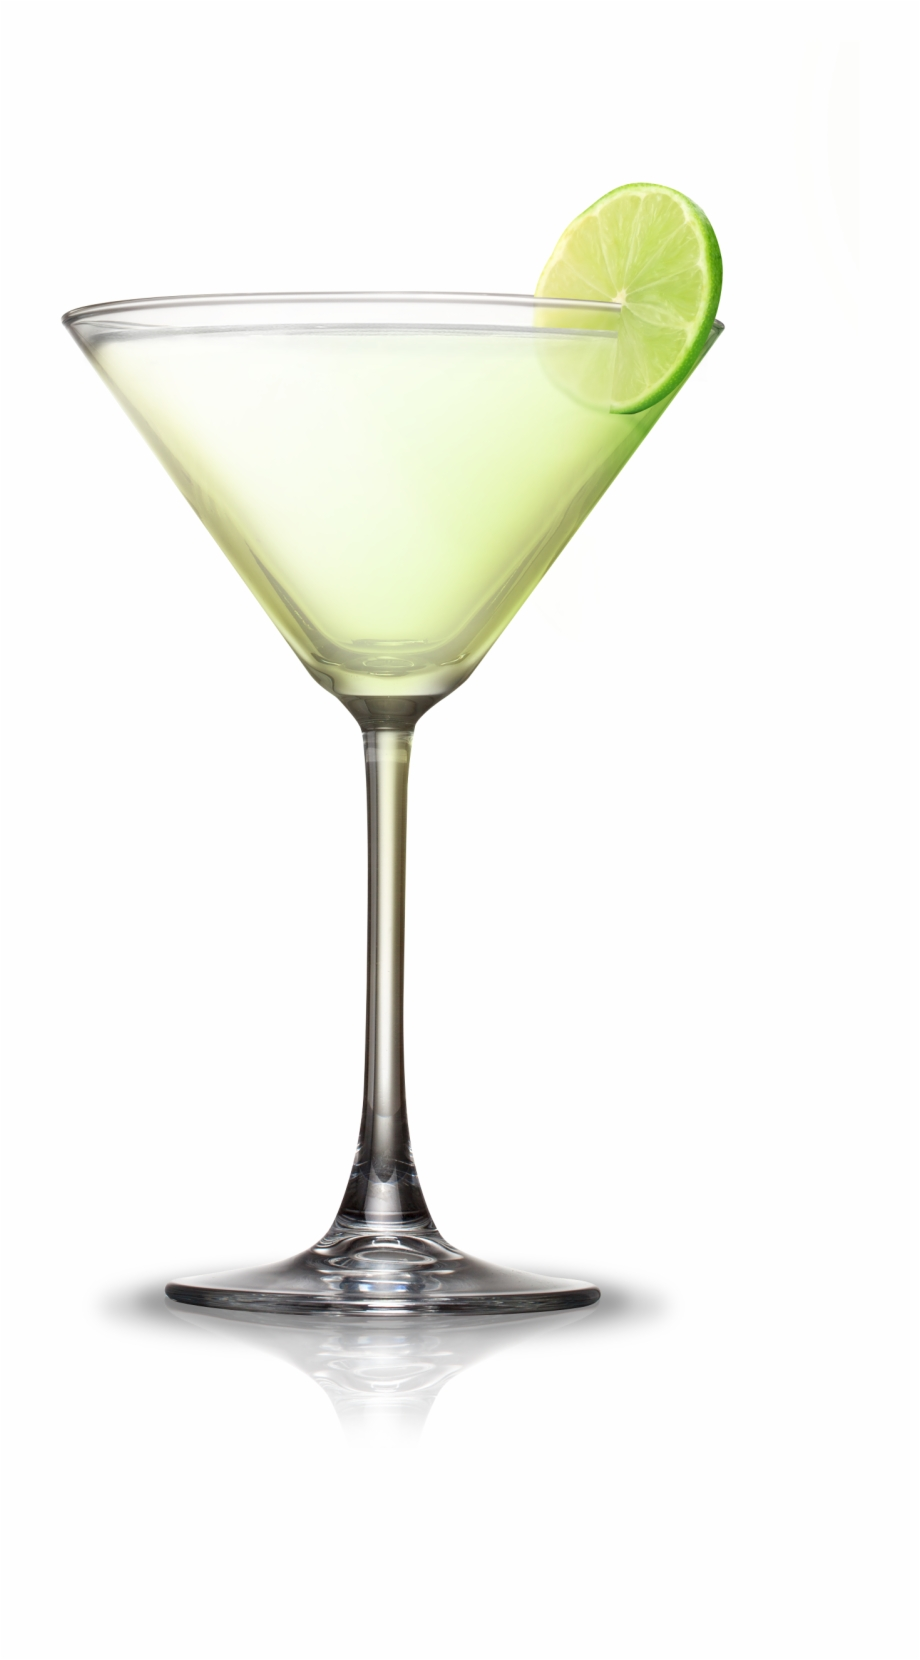 Apple martini clipart jpg transparent Clipart Library Library Ideas For The House - Apple Martini Cocktail ... jpg transparent